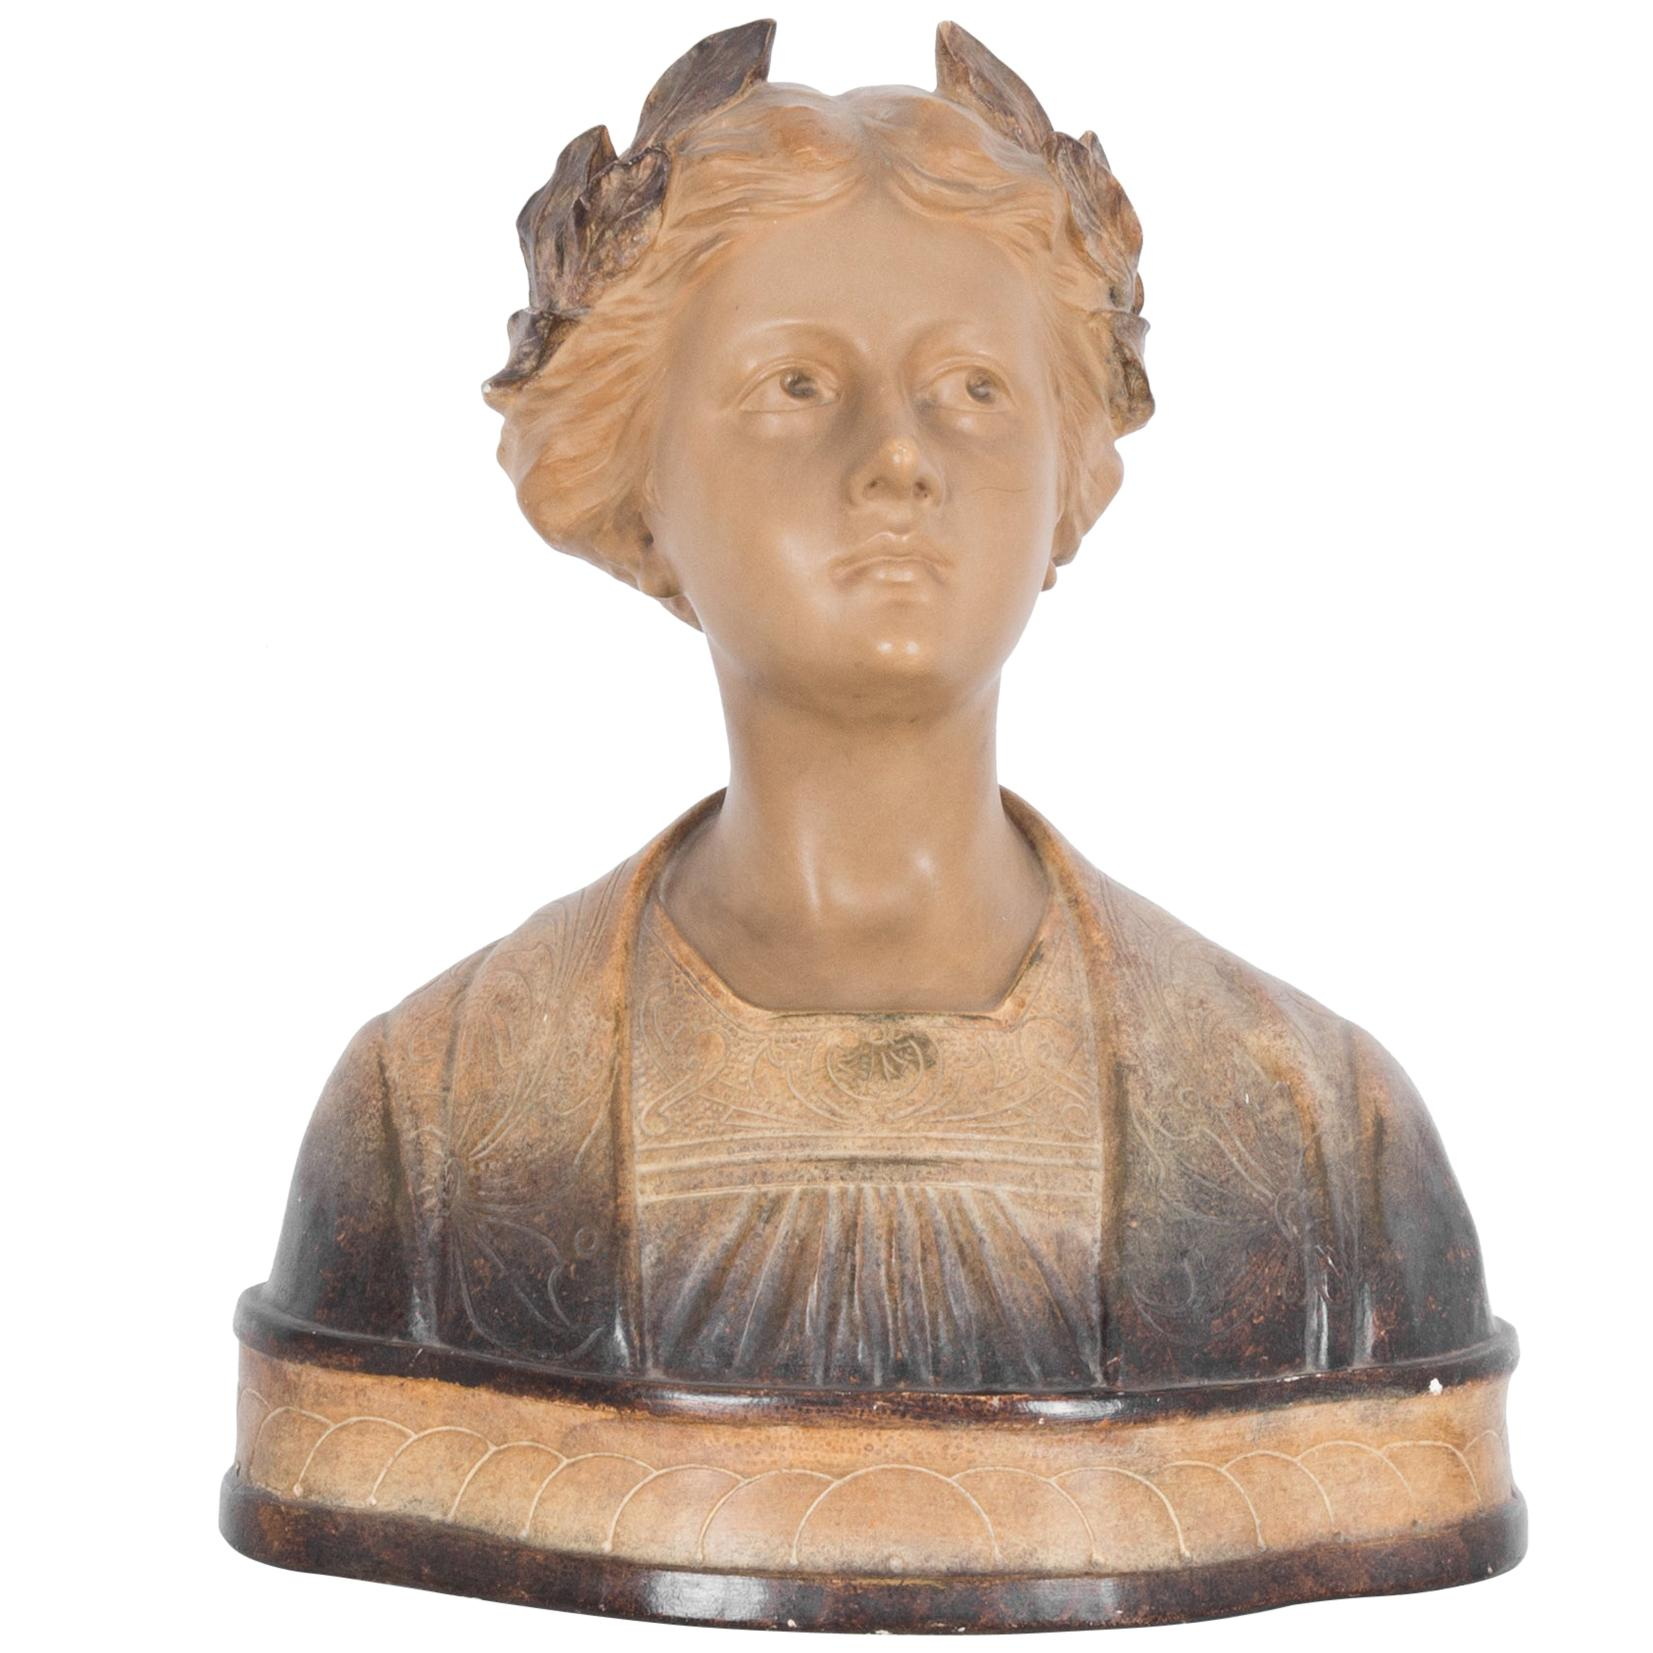 1920s French Ceramic Bust of a Young Woman